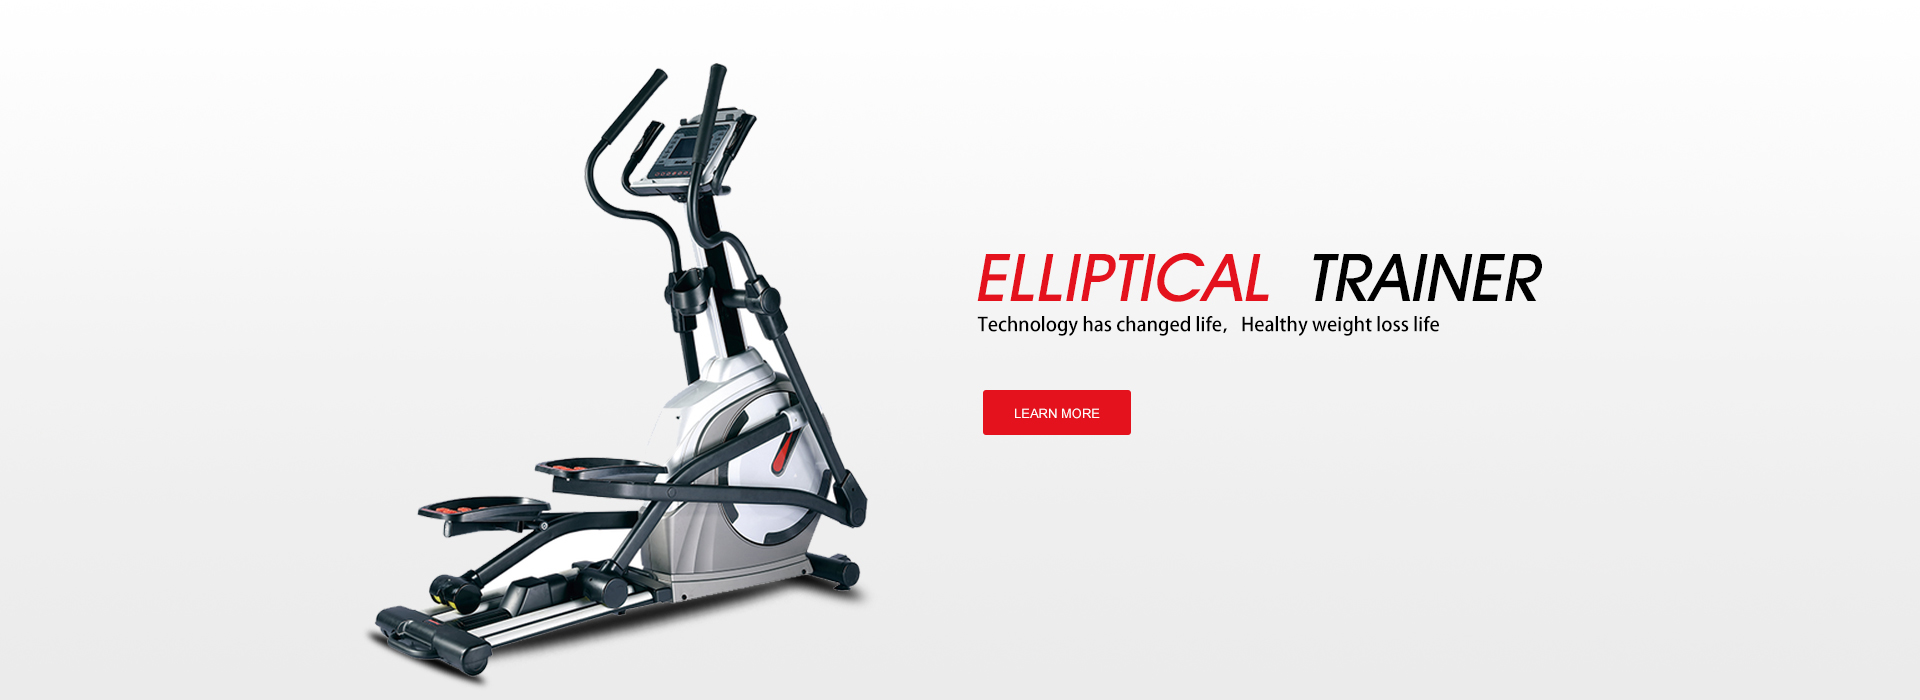 elliptical-trainer.jpg